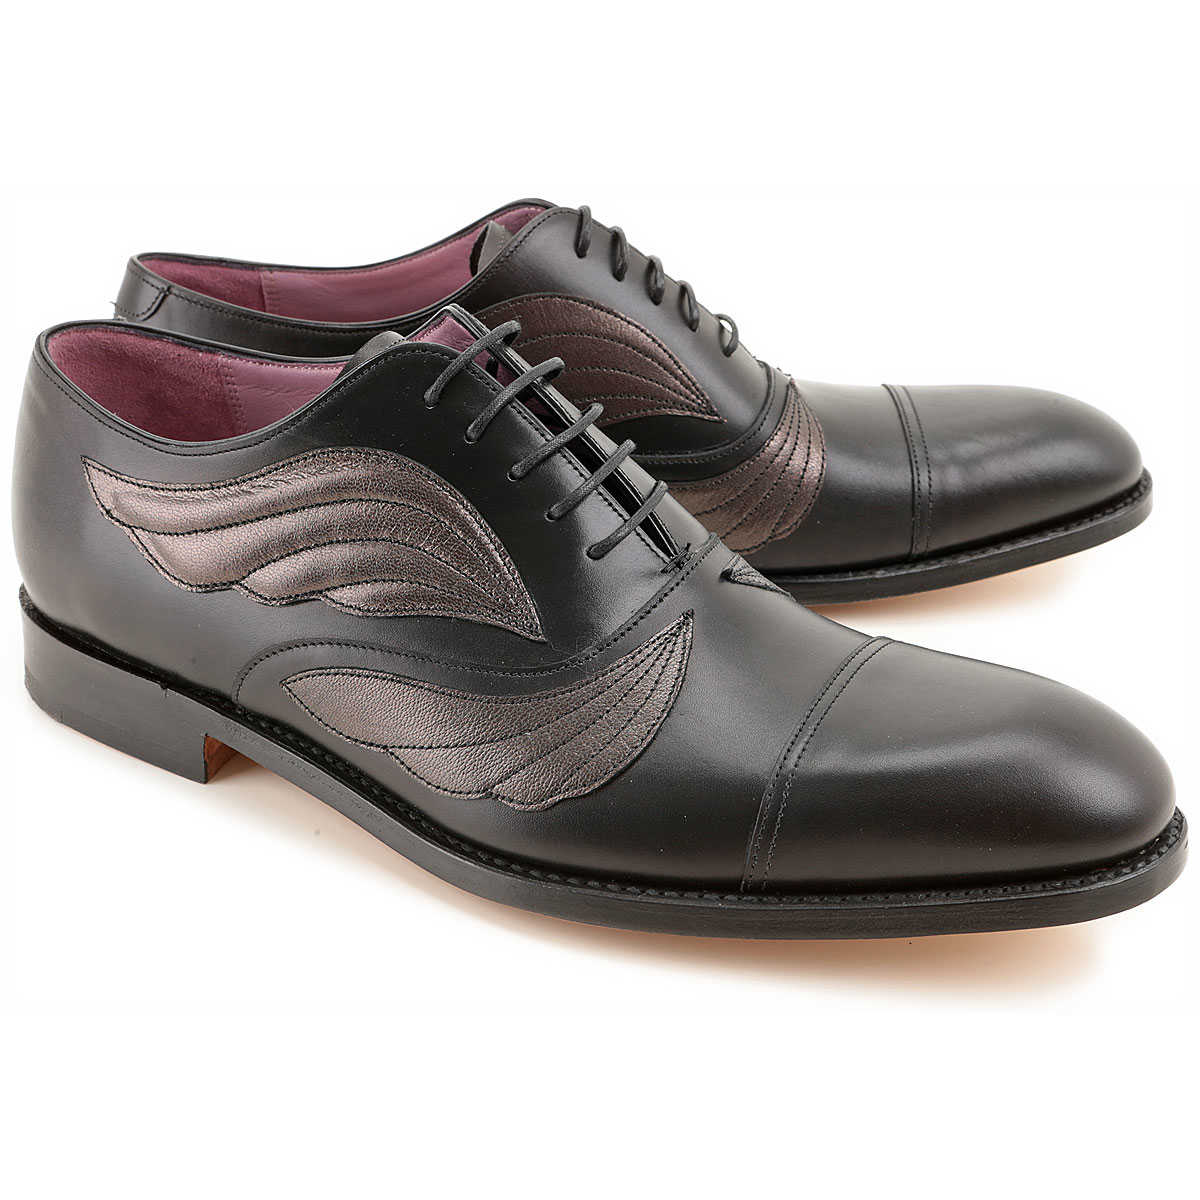 Vivienne Westwood Lace Up Shoes for Men Oxfords Derbies and Brogues On Sale USA - GOOFASH